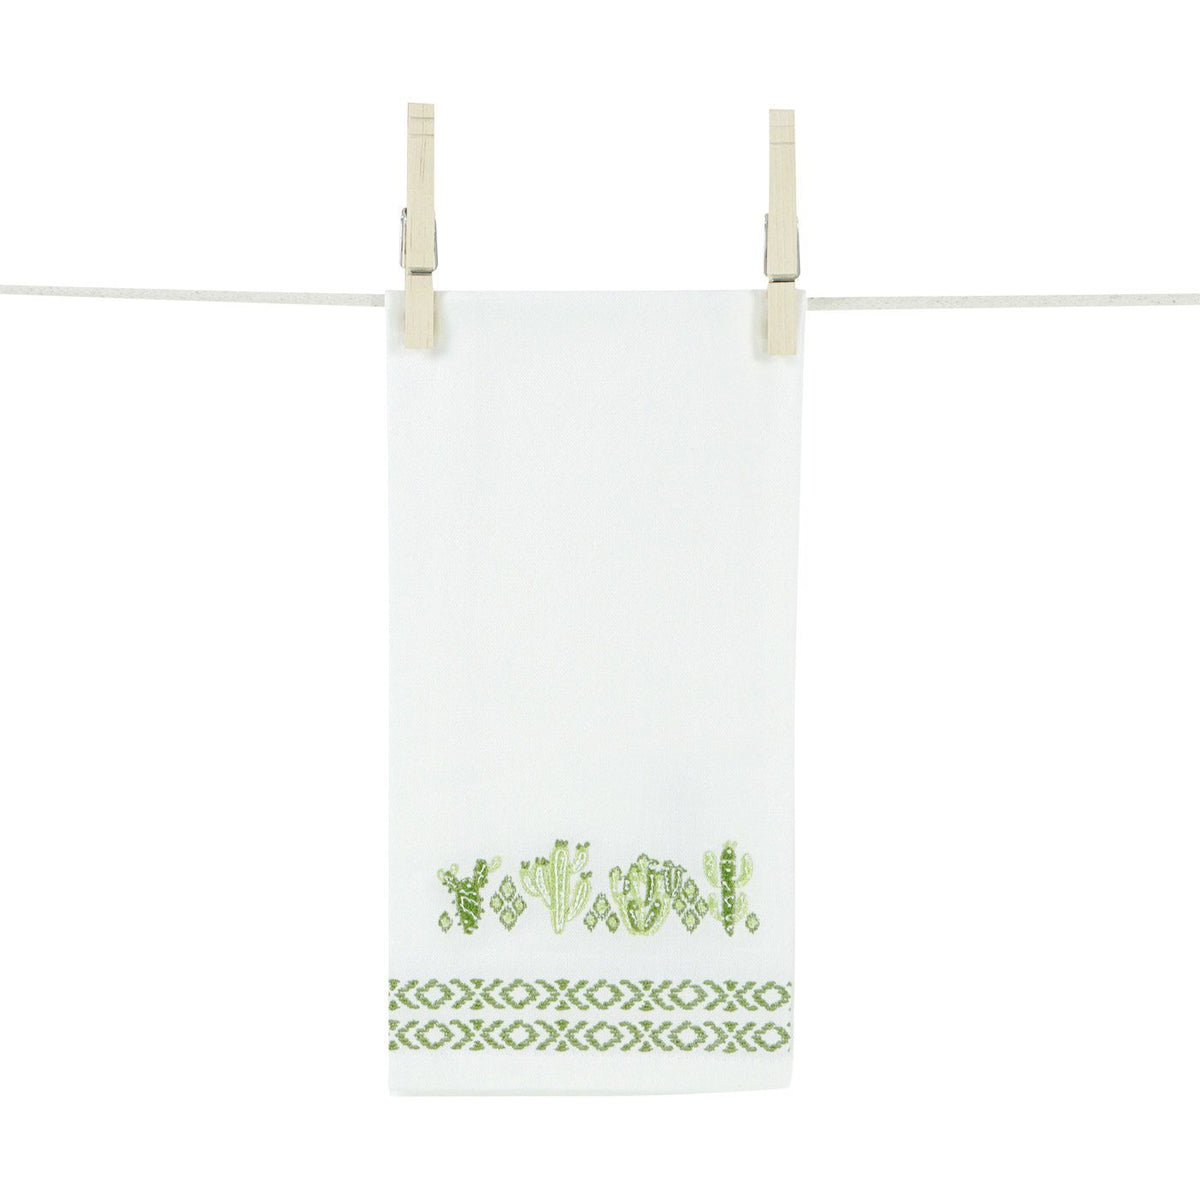 Navajo Cactus Embroidered Hand Towels (Set of 2)